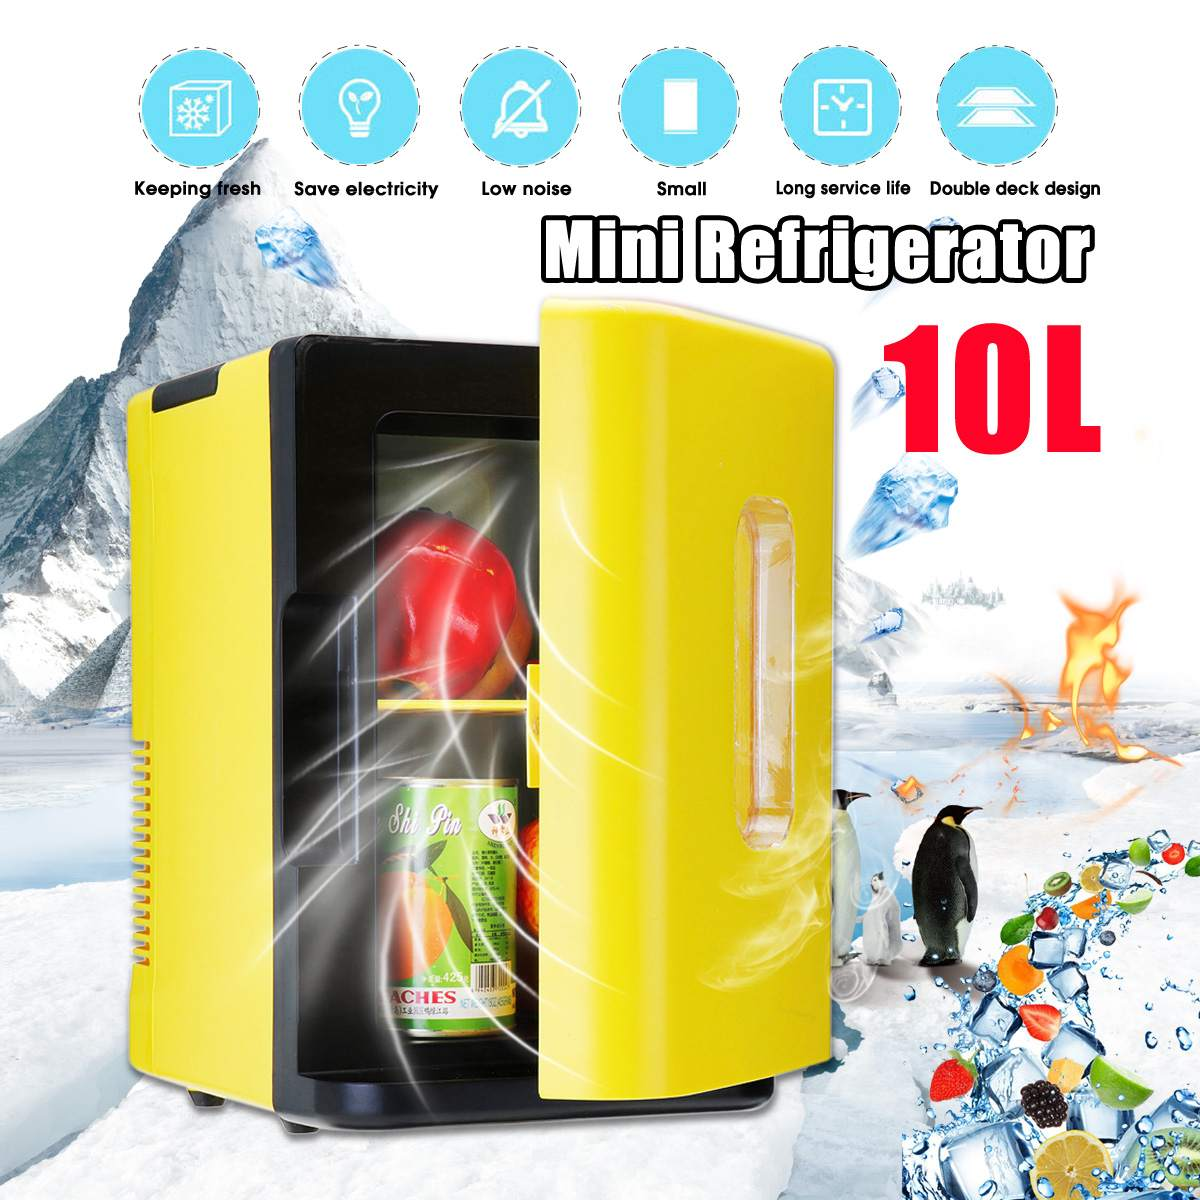 Electric Car Refrigerator 10L Dormitory Small Refrigerator Multi-Purpose Mini Refrigerator Car Home Dual-Use 220V